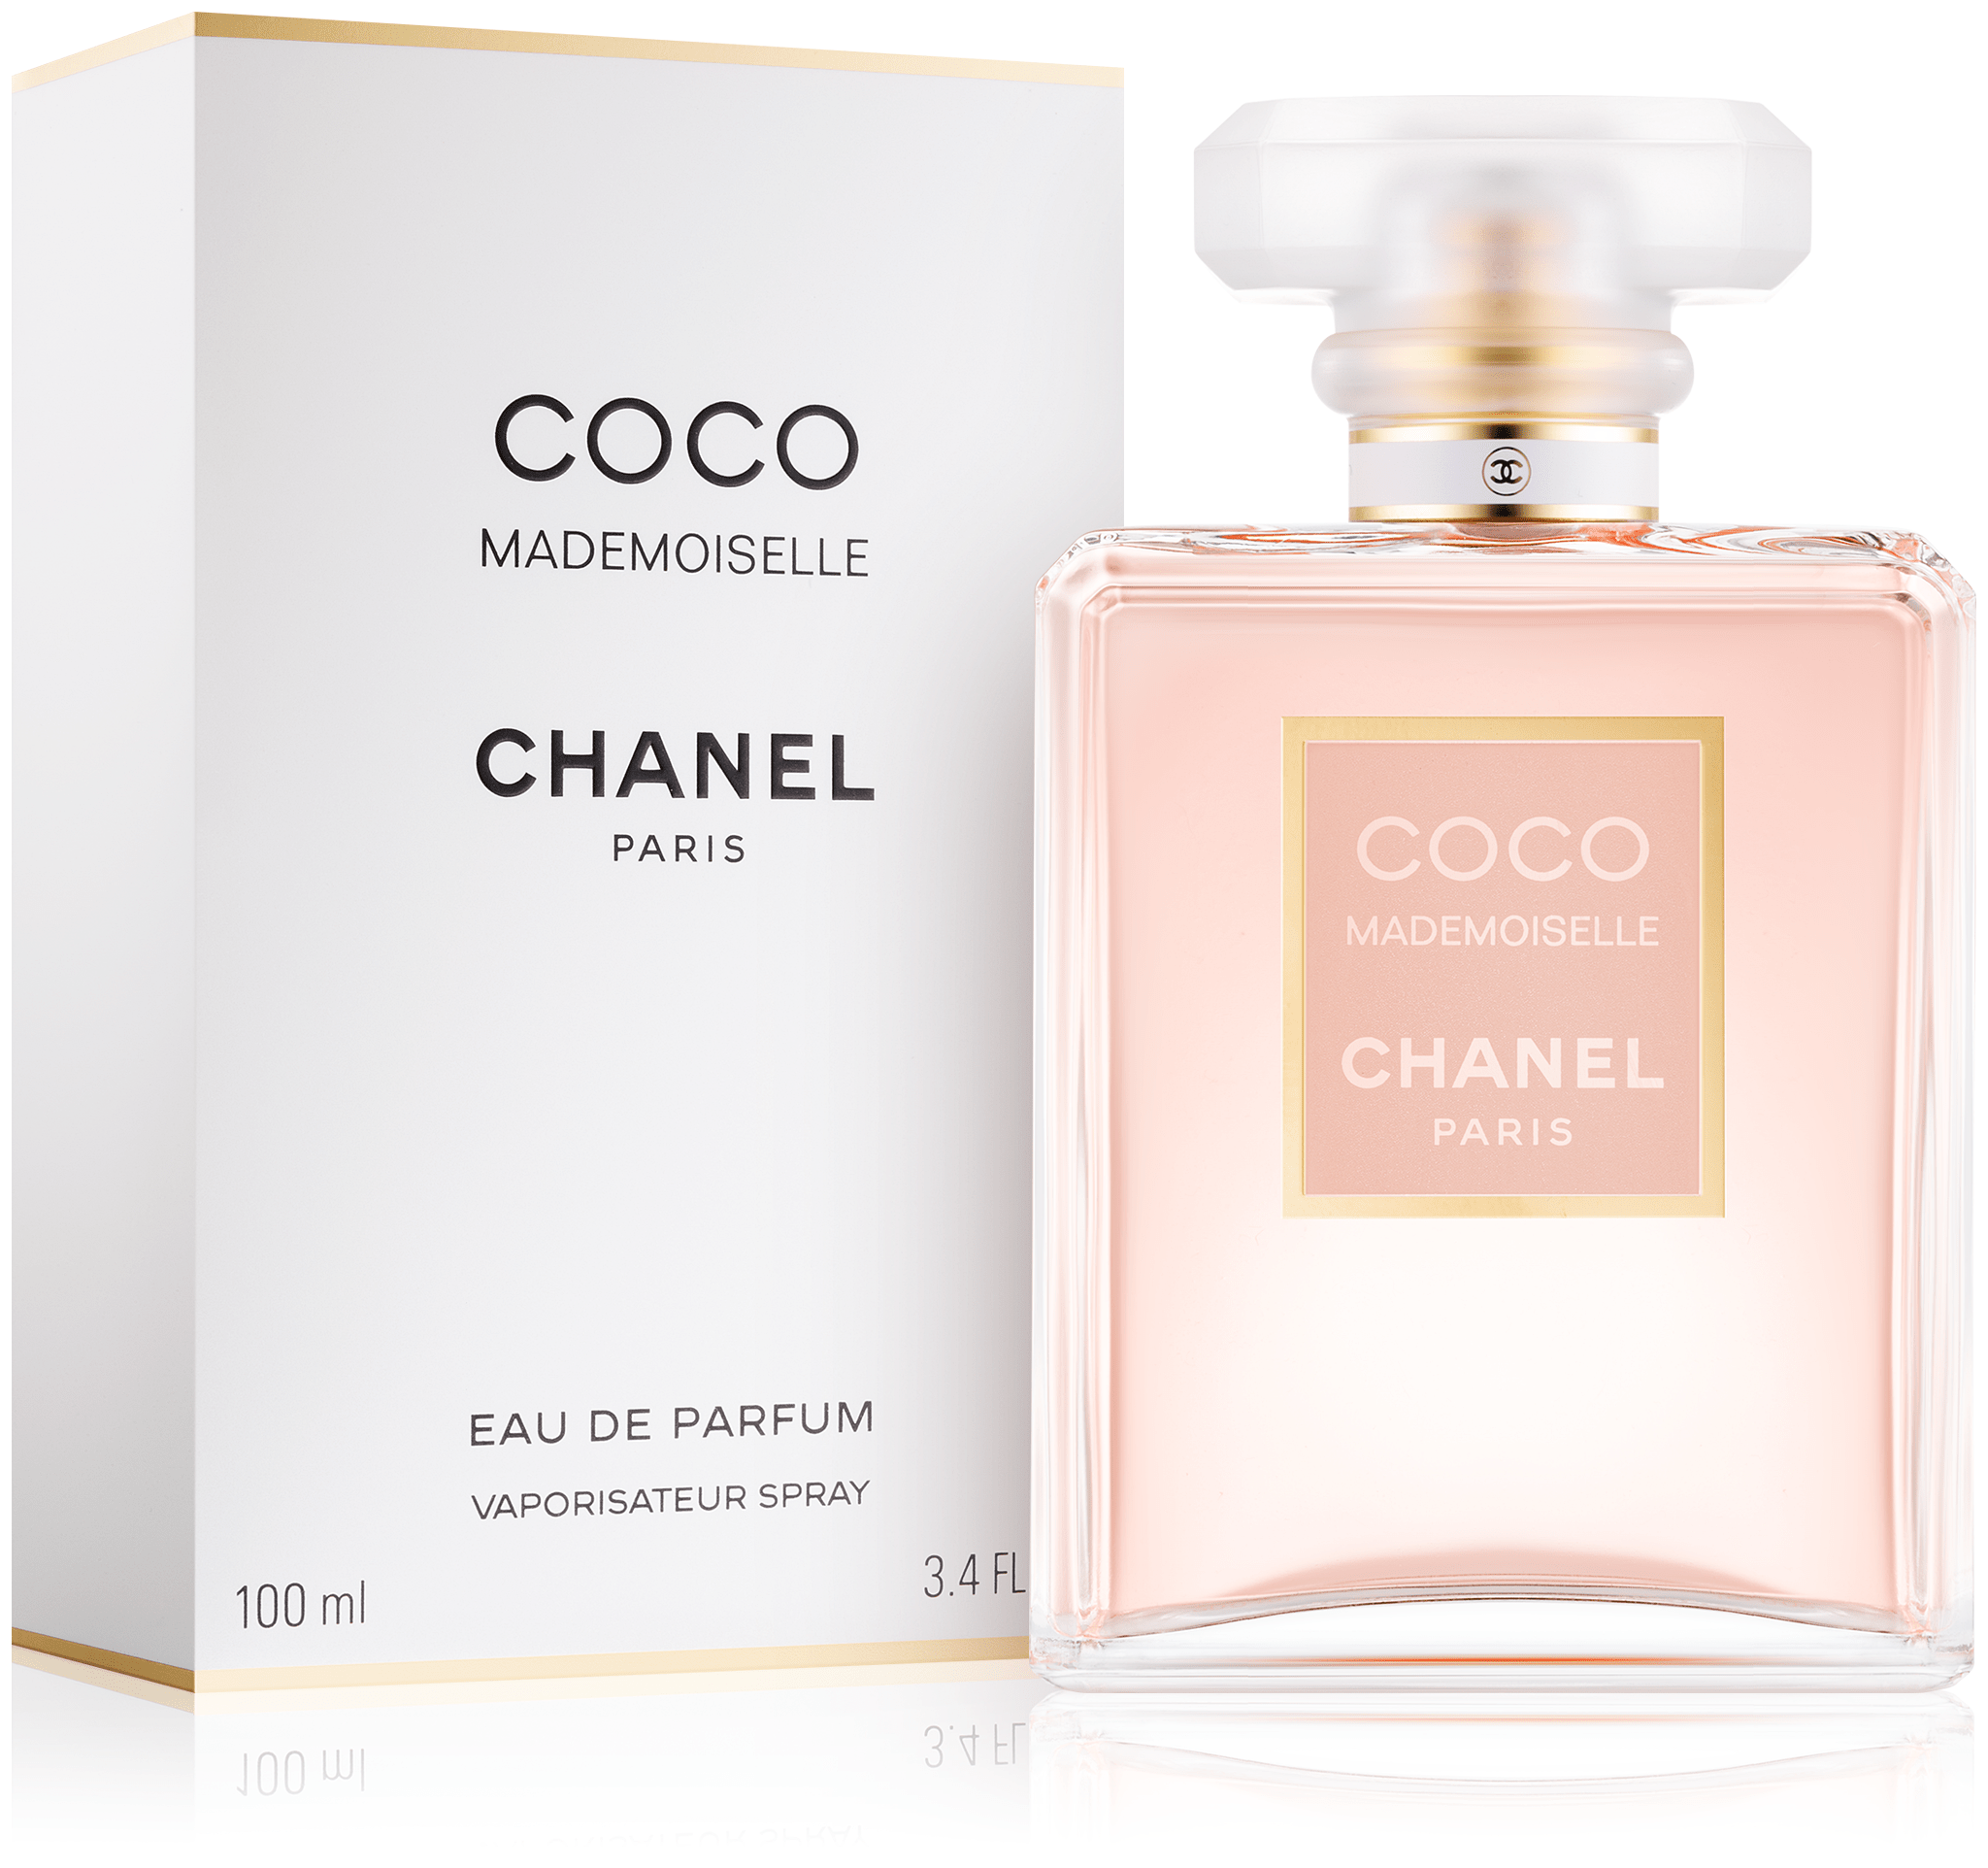 Chanel Coco Mademoiselle Edp 100ml For Women Perfume For Bangladesh